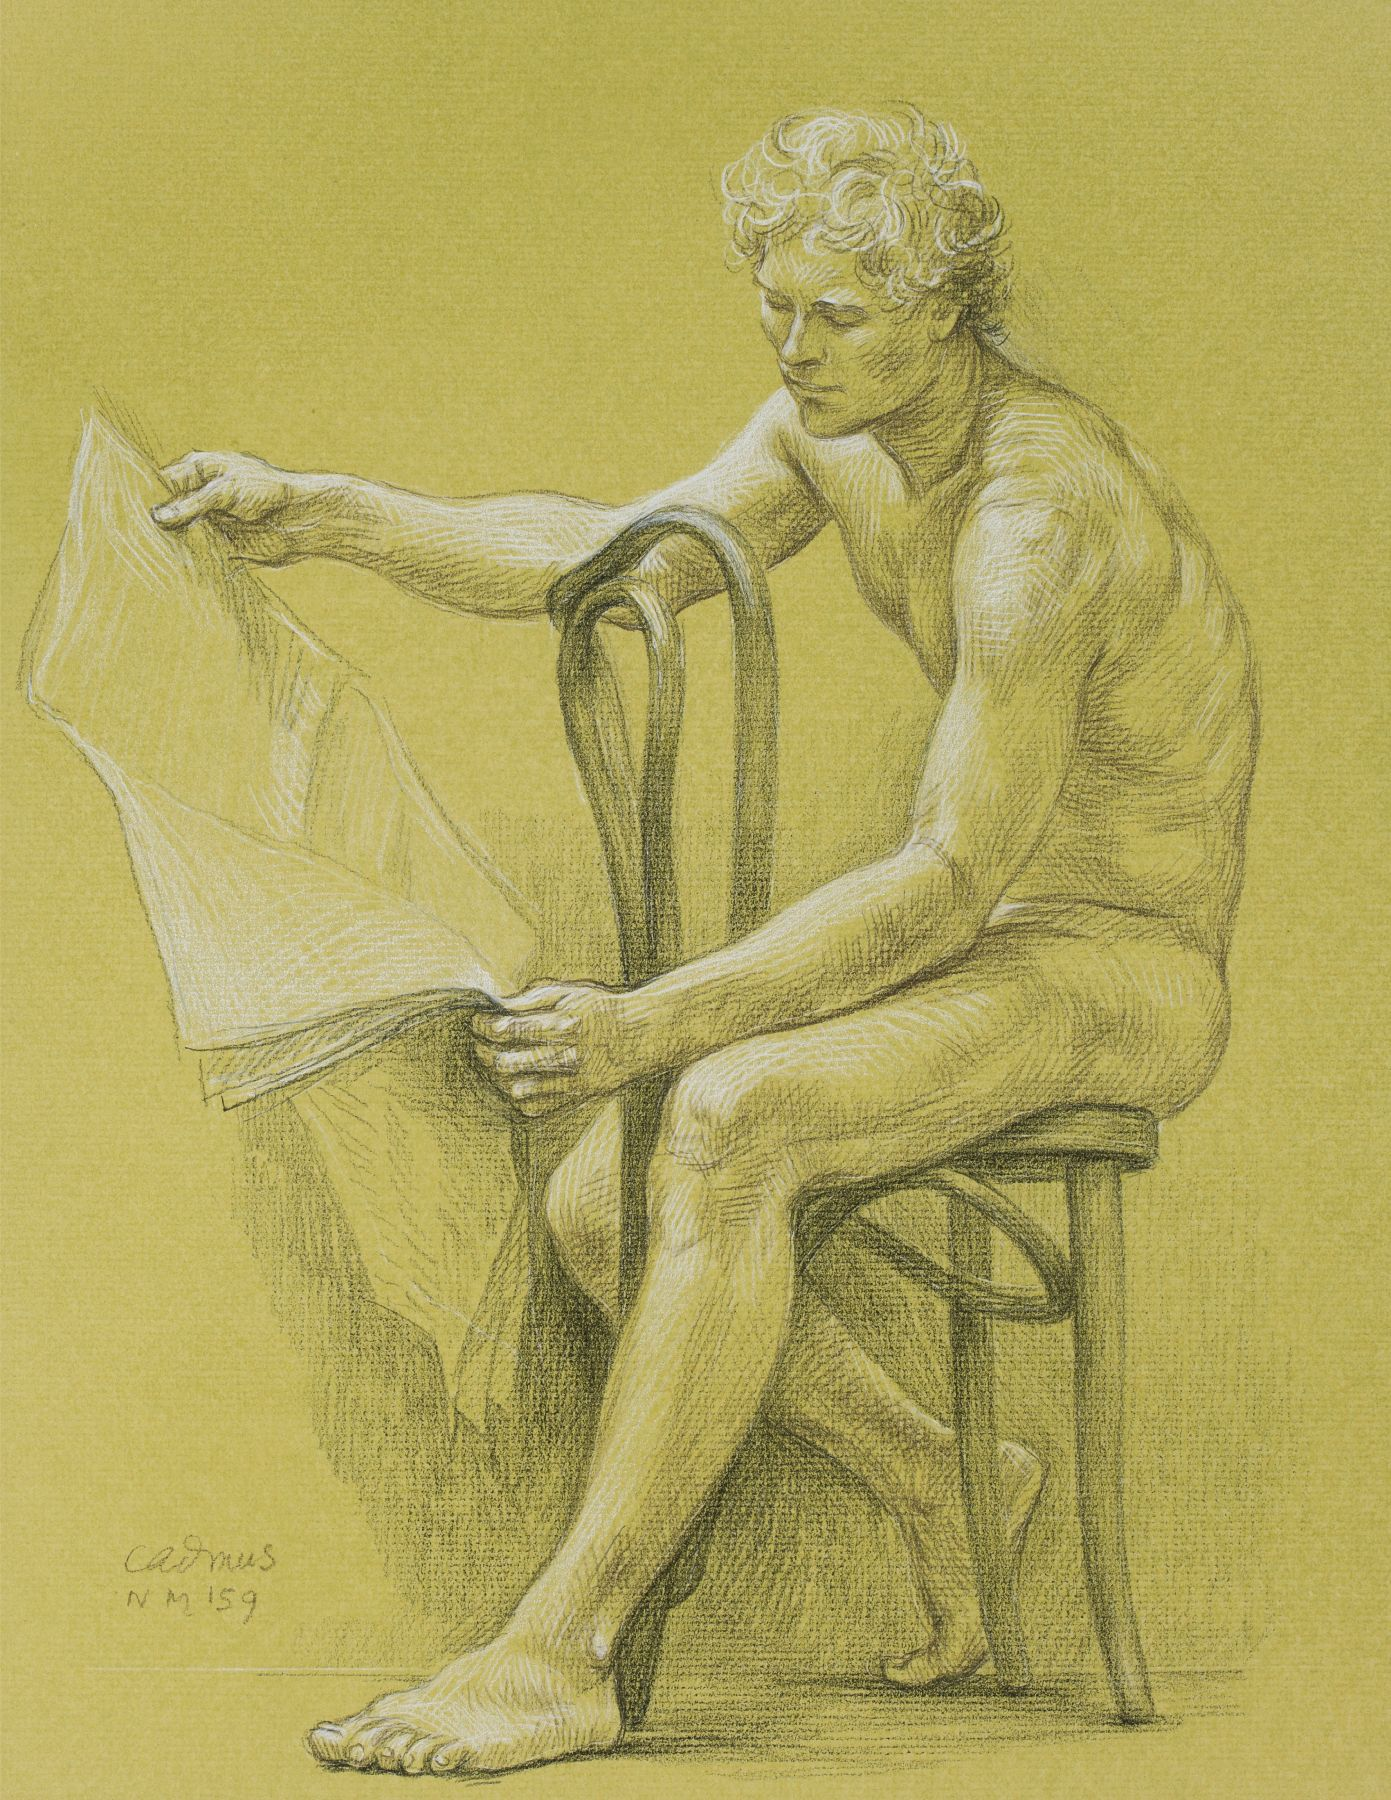 Male Nude NM159, c. 1979